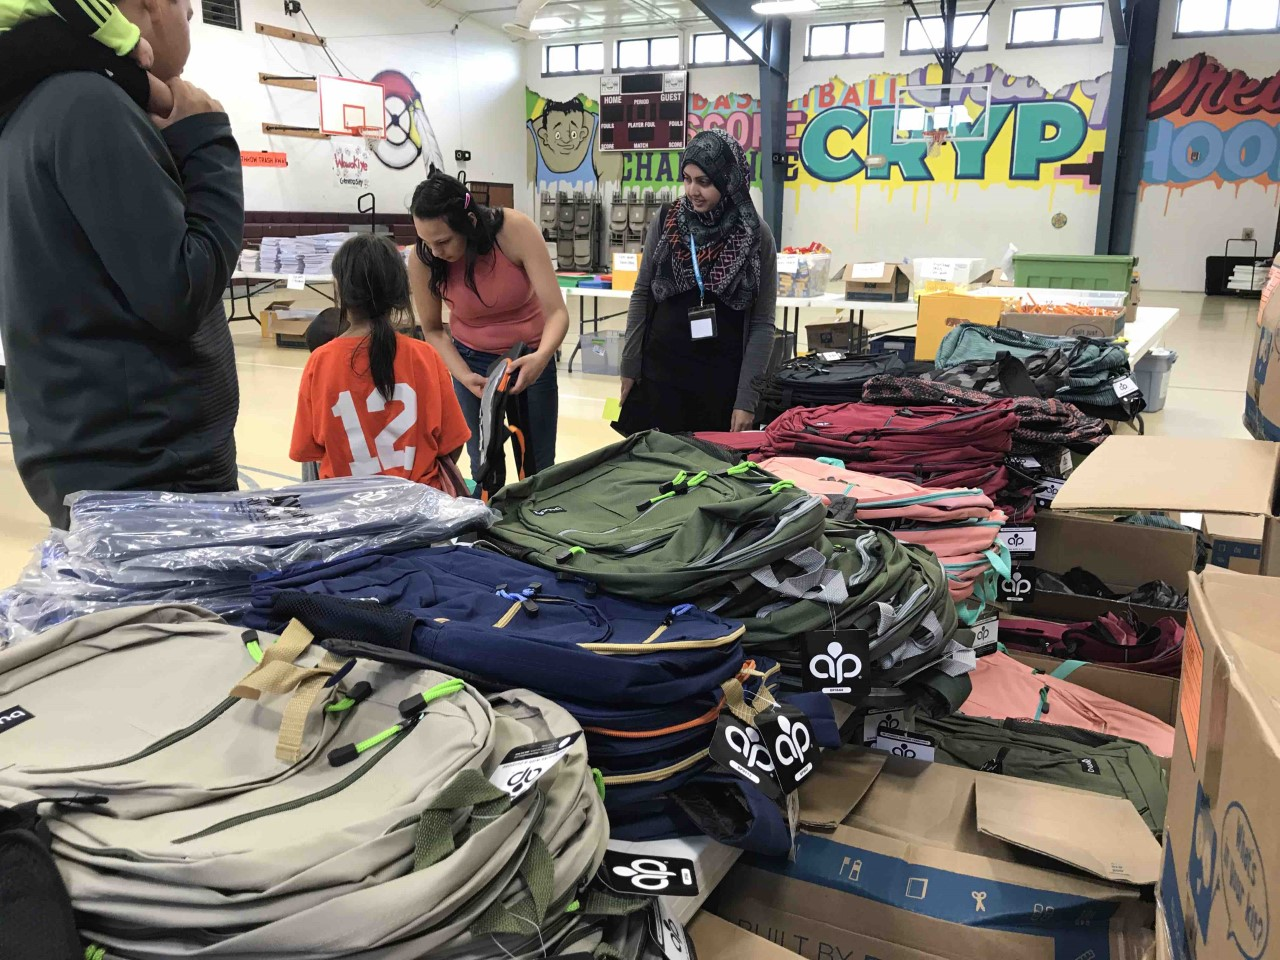 The Cheyenne River Youth Project Distributes School Supplies to More Than 500 Children